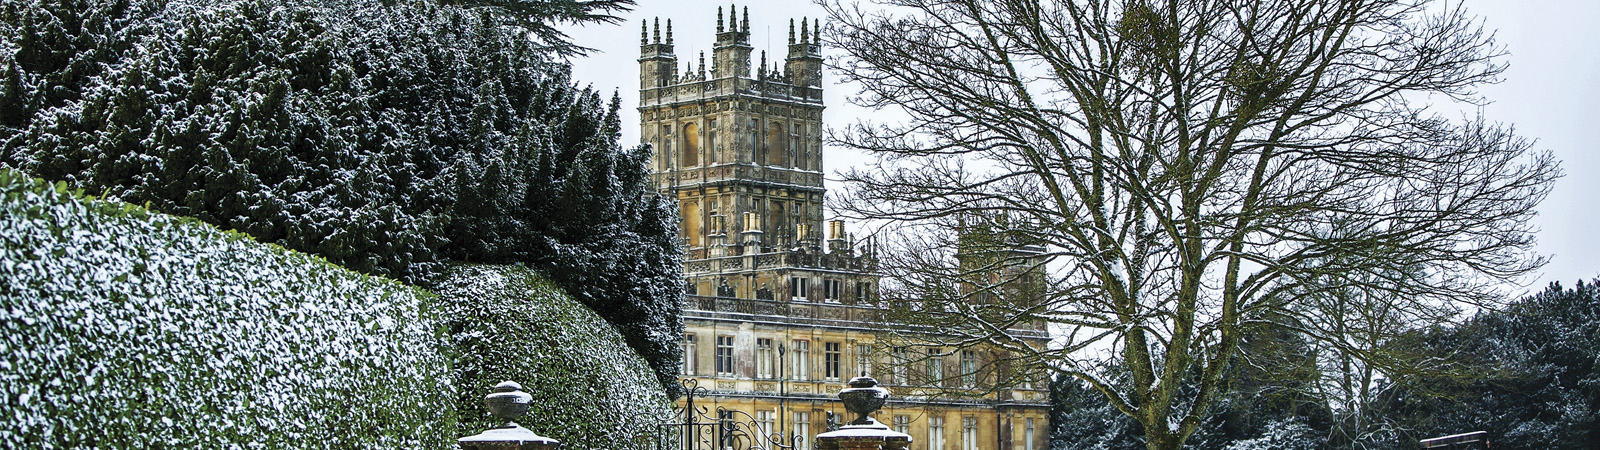 Downton Abbey Christmas Ball At Highclere Castle